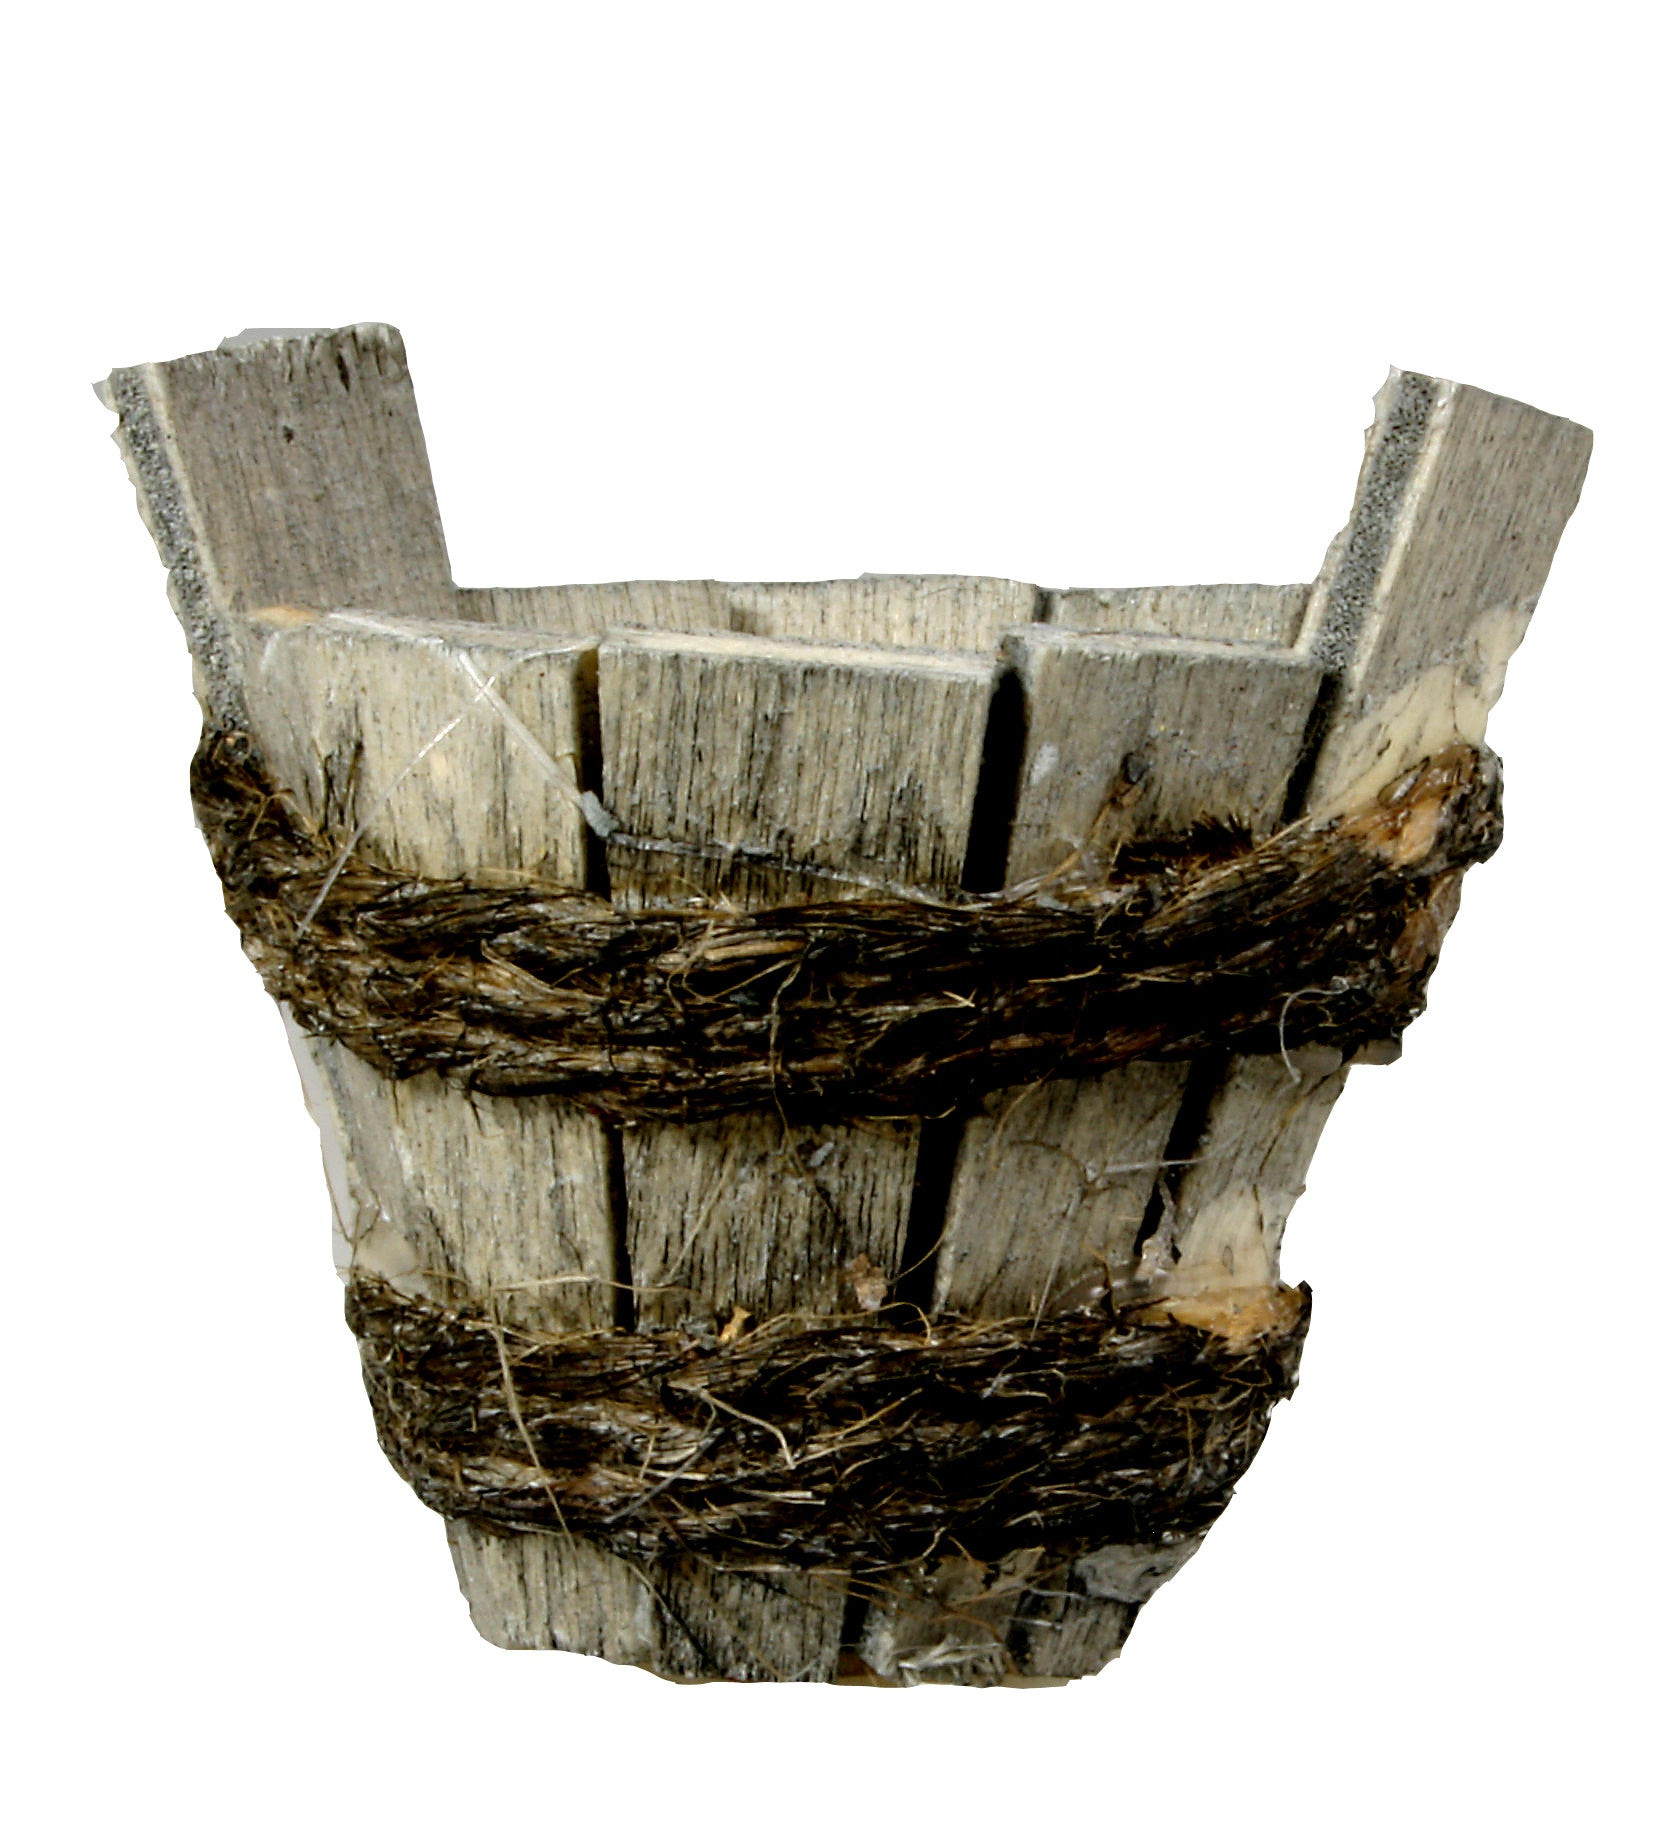 "Rustic Wooden Tub - 1-1/8"" tall"